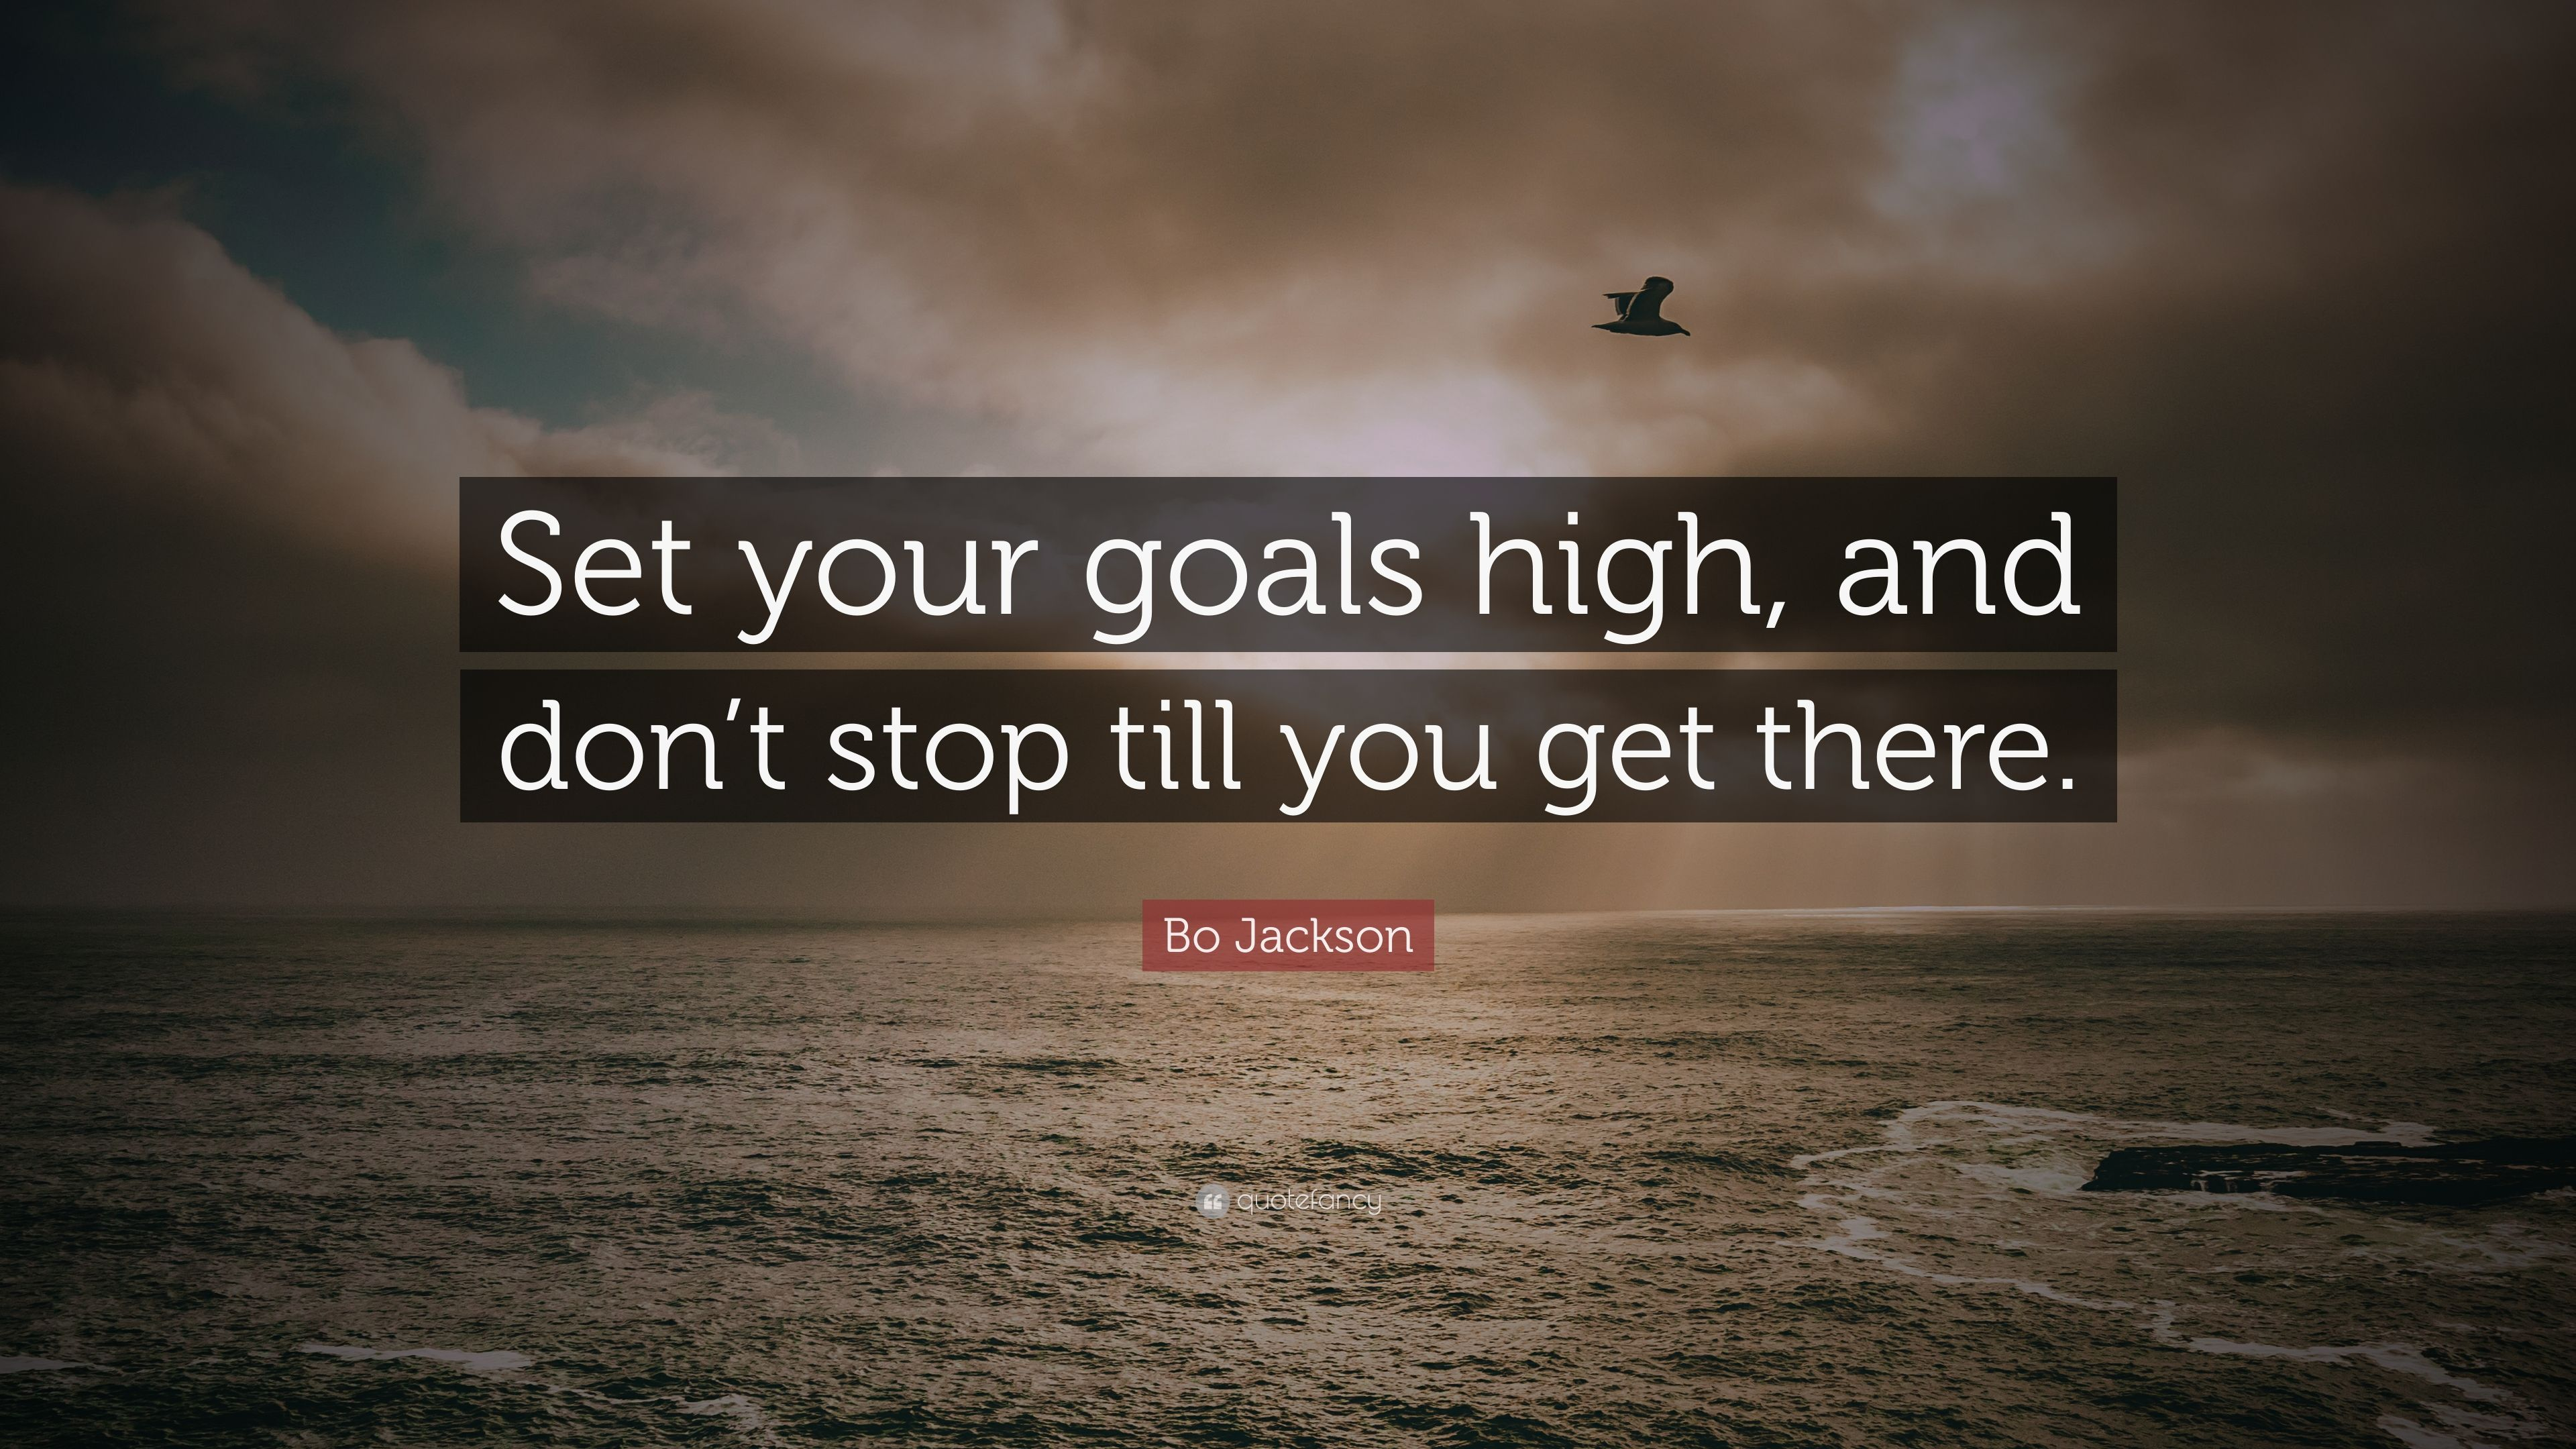 bo jackson quote �set your goals high and don�t stop